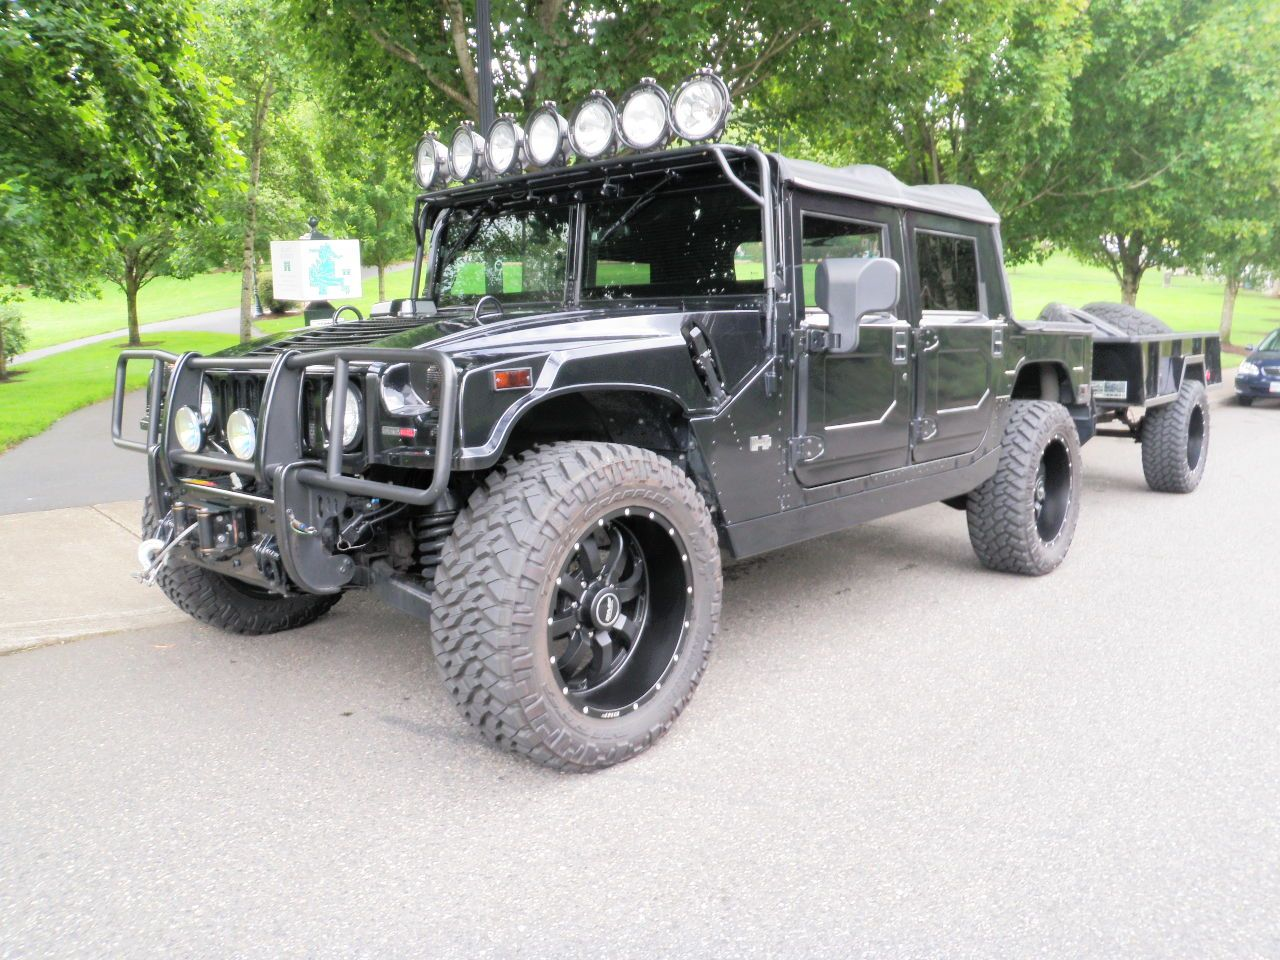 Image detail for hummer h1 alpha custom sema show truck with trailer